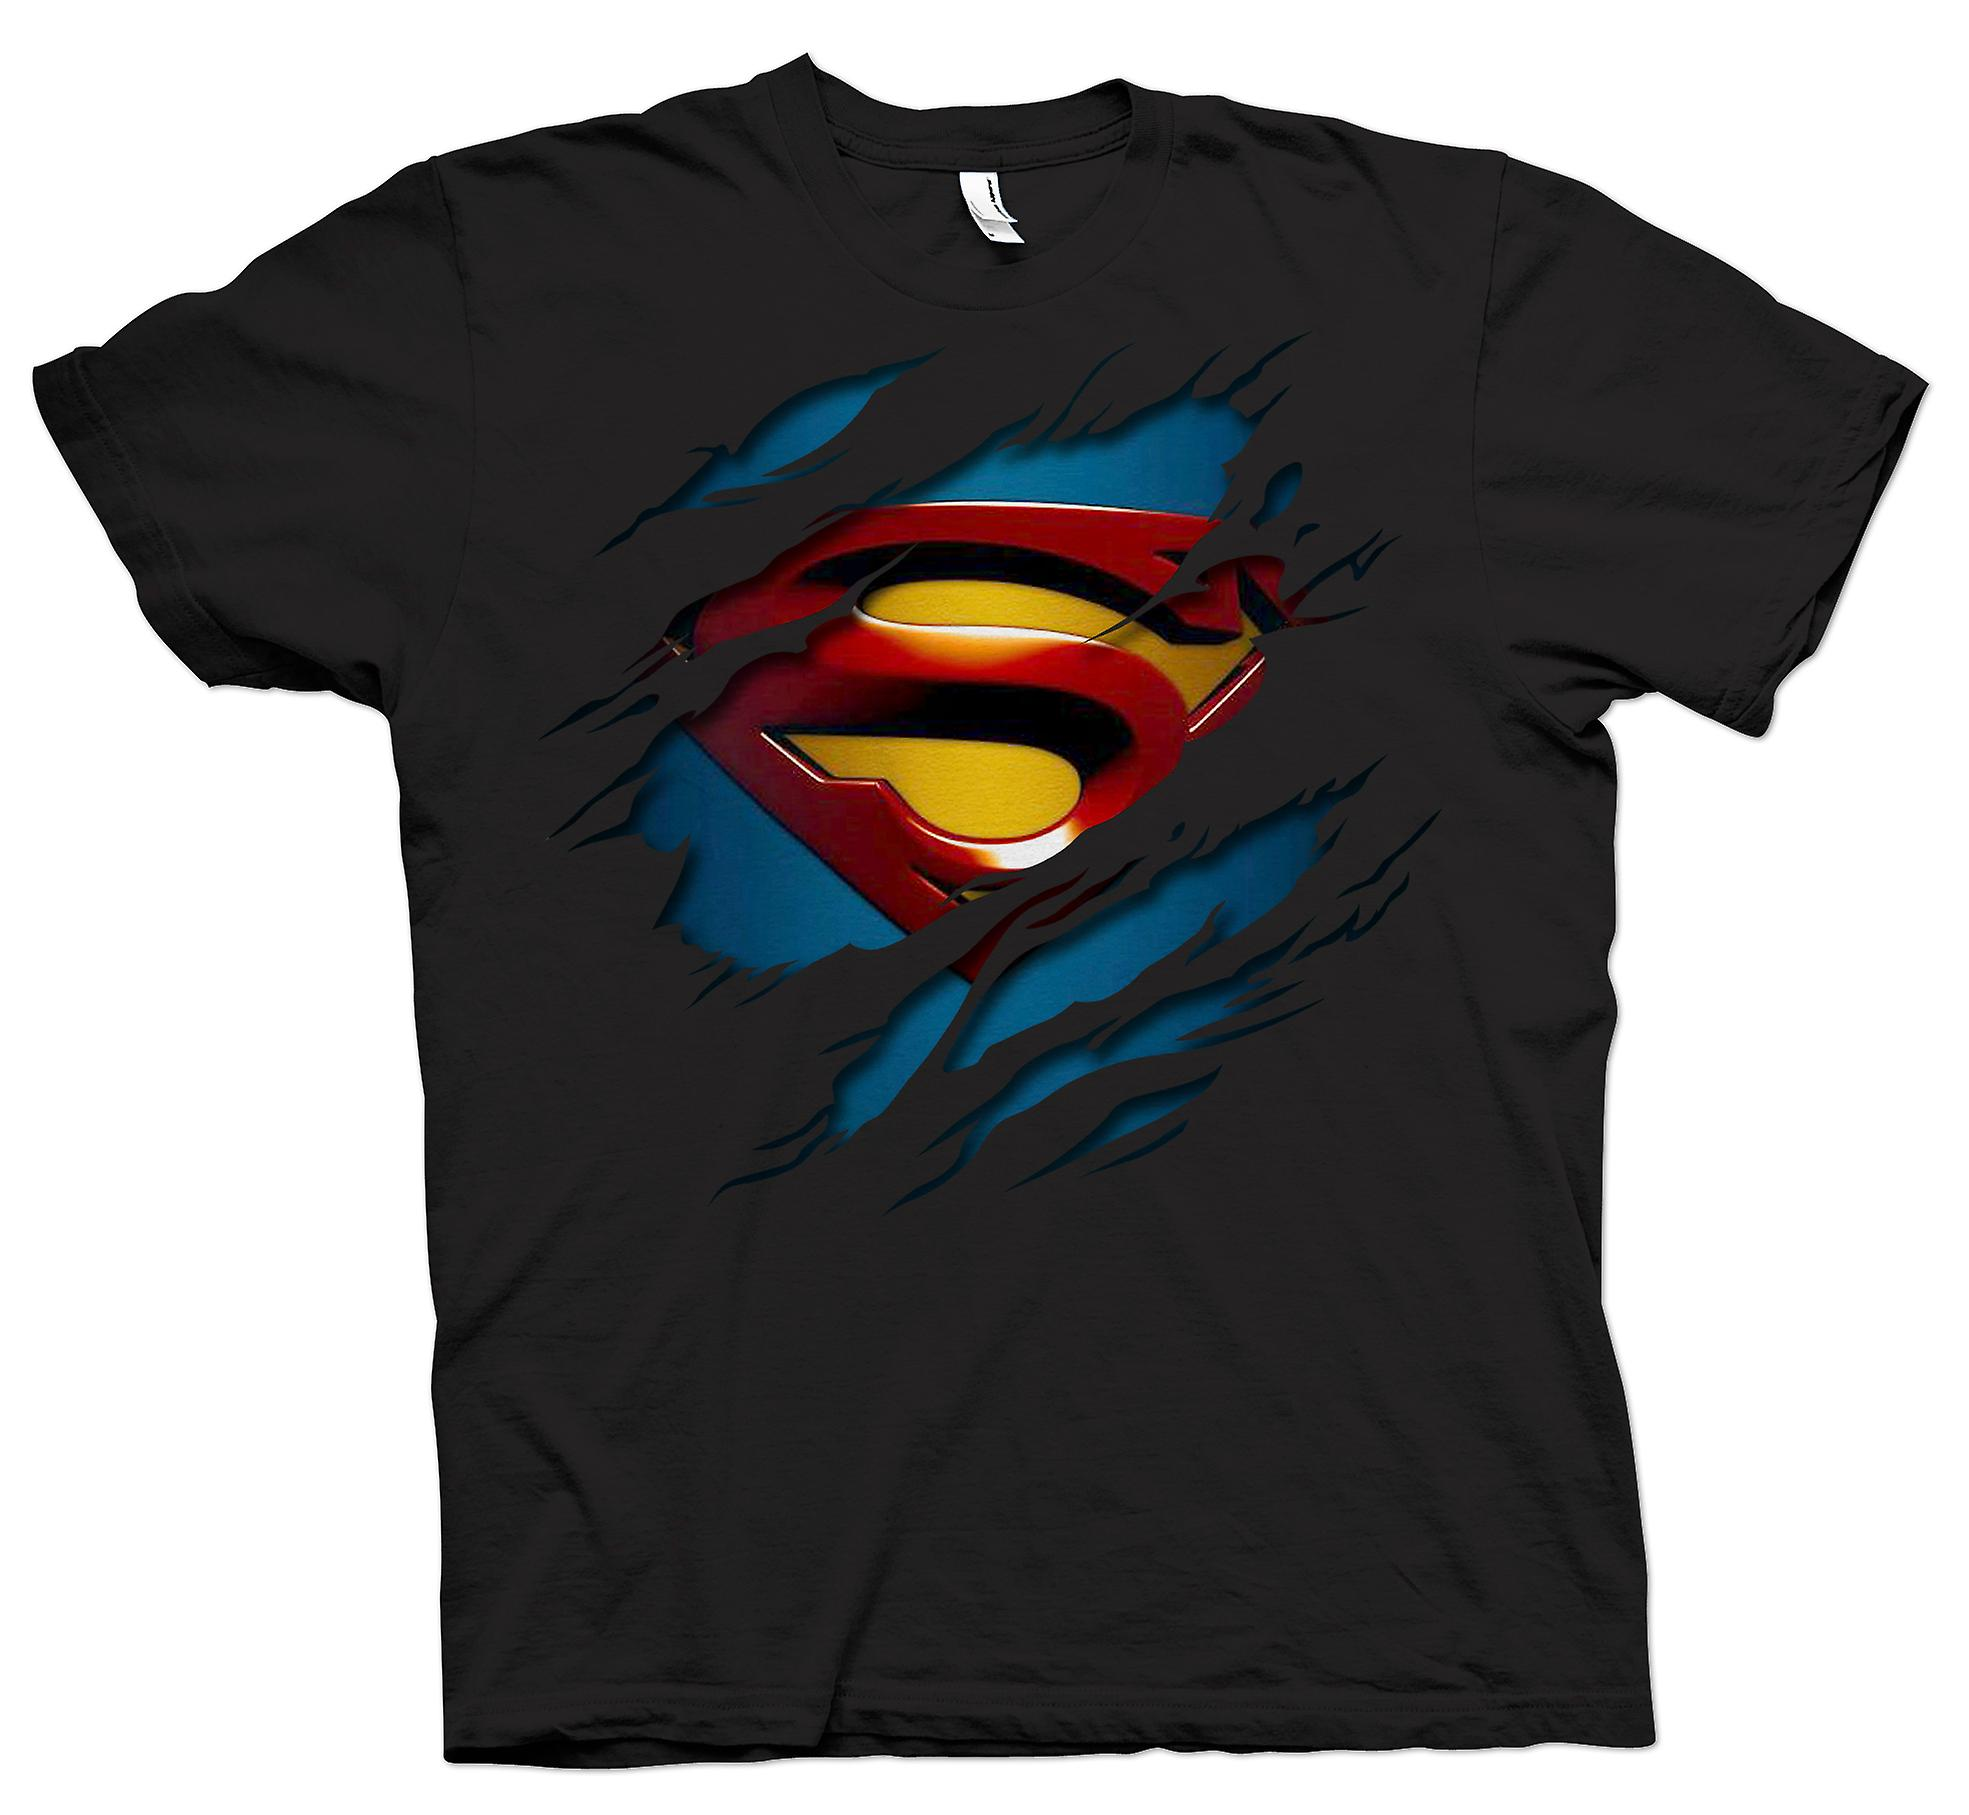 Womens T-shirt - Superman Under Shirt Effect - Action - Superhero